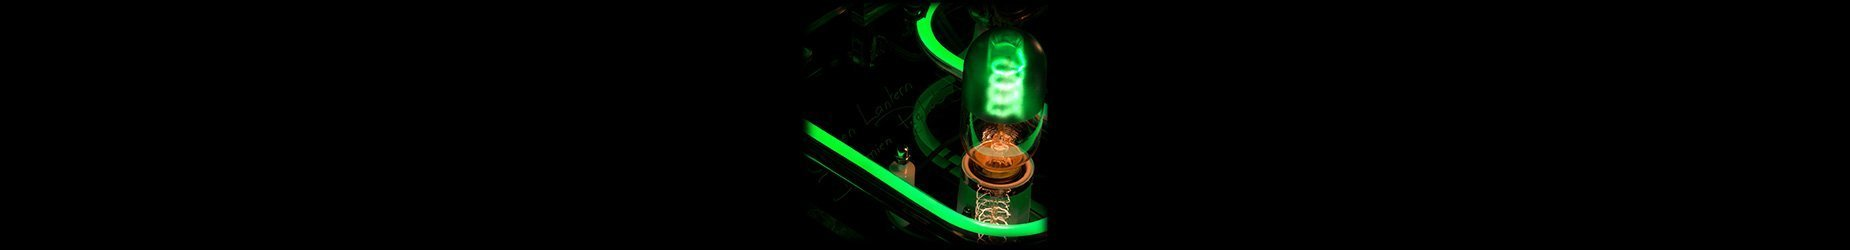 Picture of a light bulb of Green Lantern lighting with reflection on Plexiglas - Mix and match styles